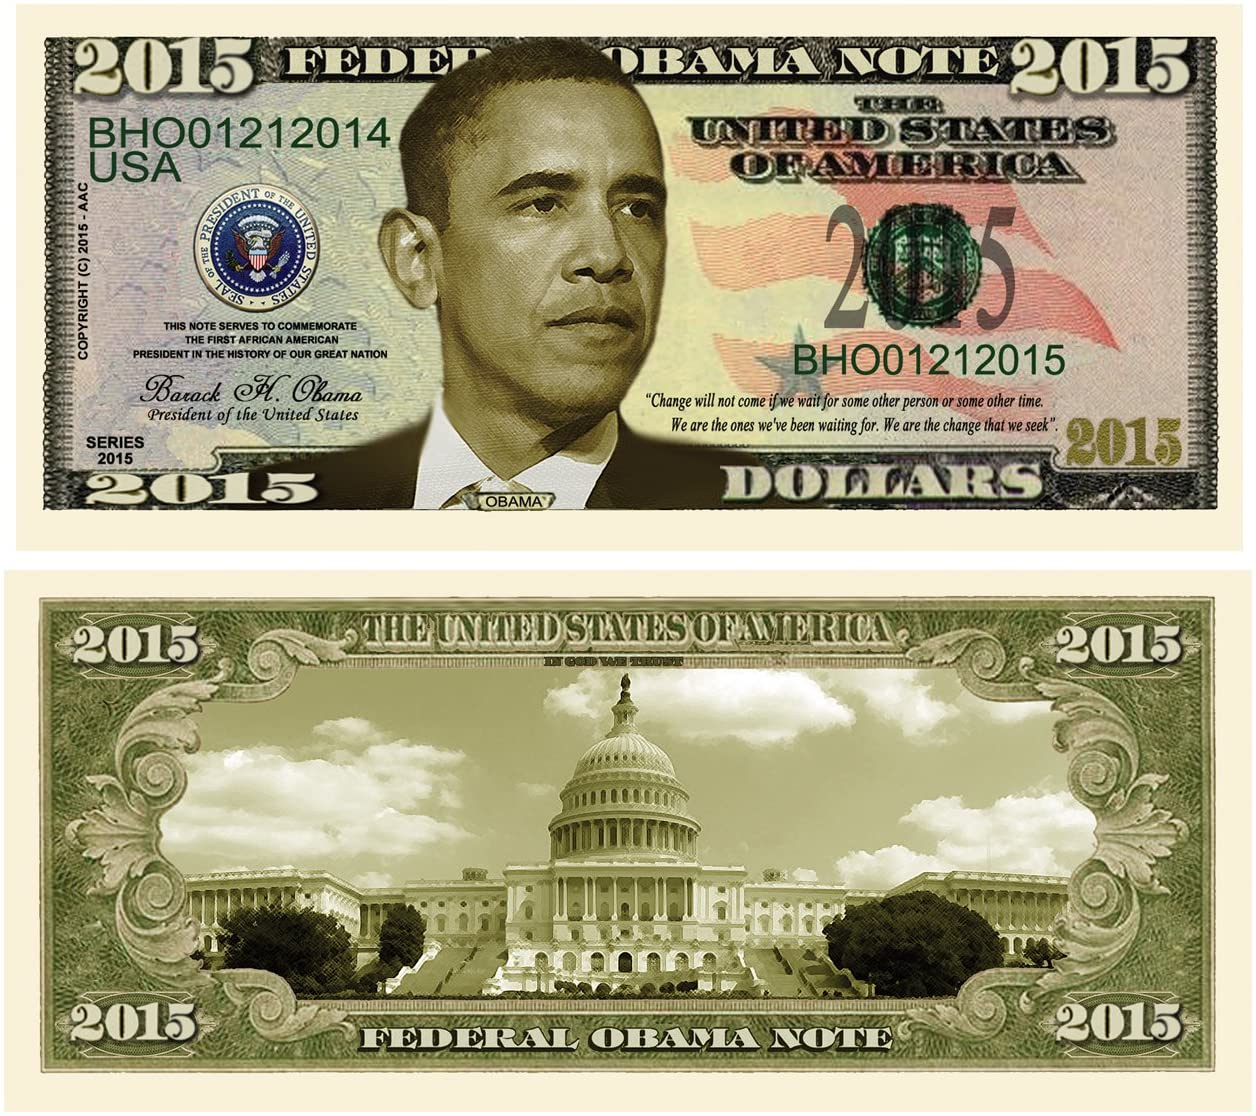 American Art Classics Set of 25 - Barack Obama 2015 Commemorative Dollar Bill